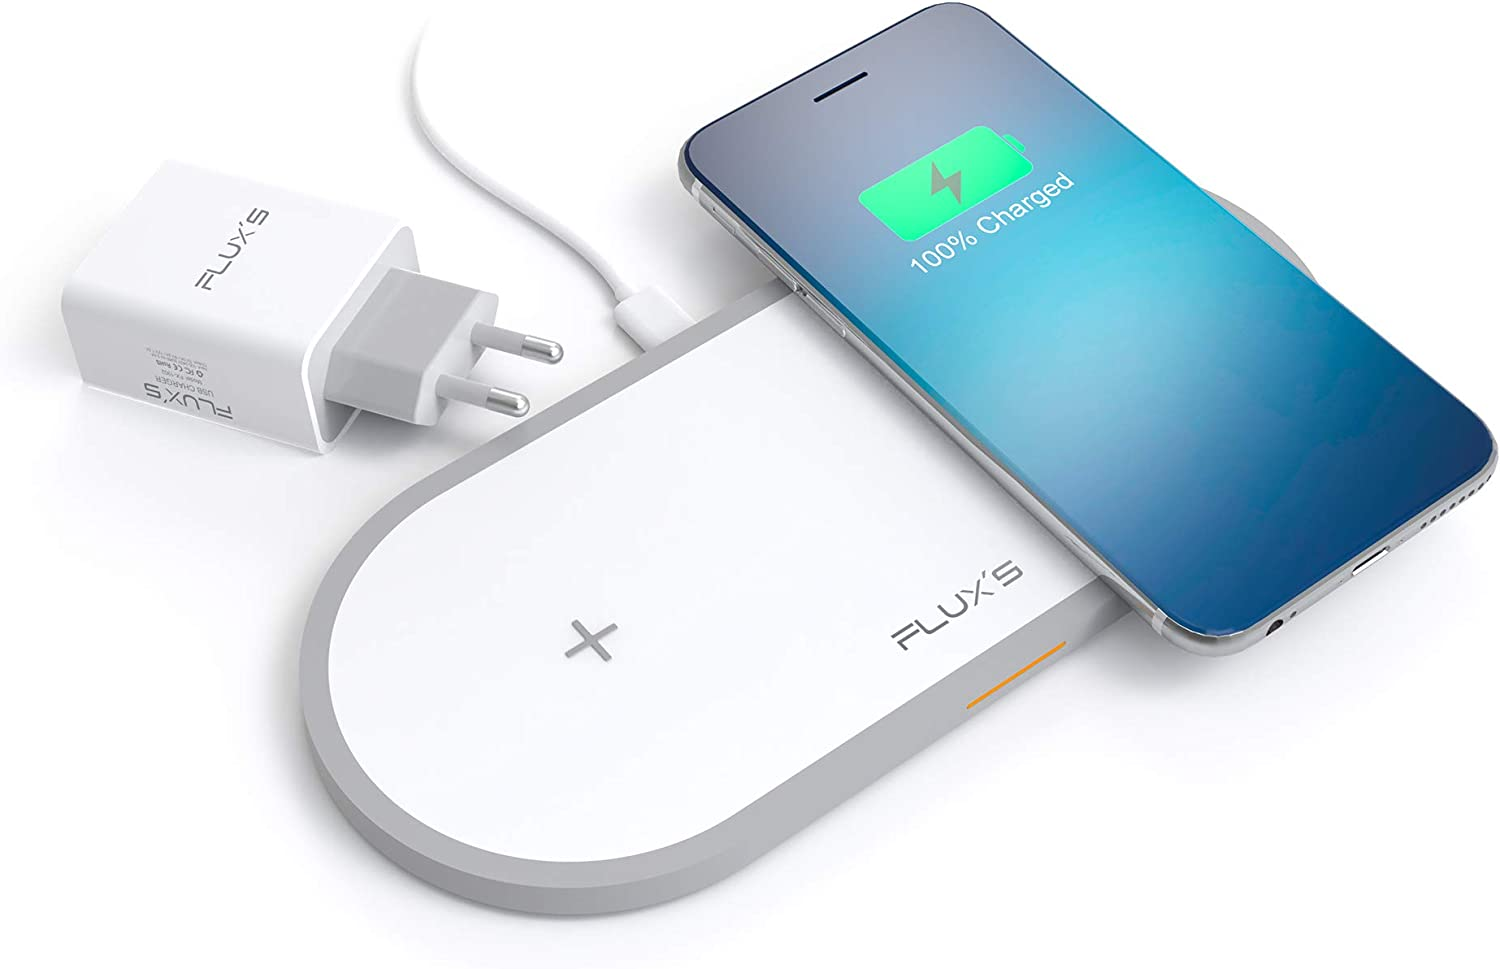 FLUX'S Cargador Inalambrico Doble, Carga Rapida Wireless Dual por Inducción 5W / 7.5 W / 10 W, Qi Fast Charger, Incluye Adaptador de Corriente, para iPhone11/11Pro/XR/Xs Max/X/8/Airpods 2 Galaxy